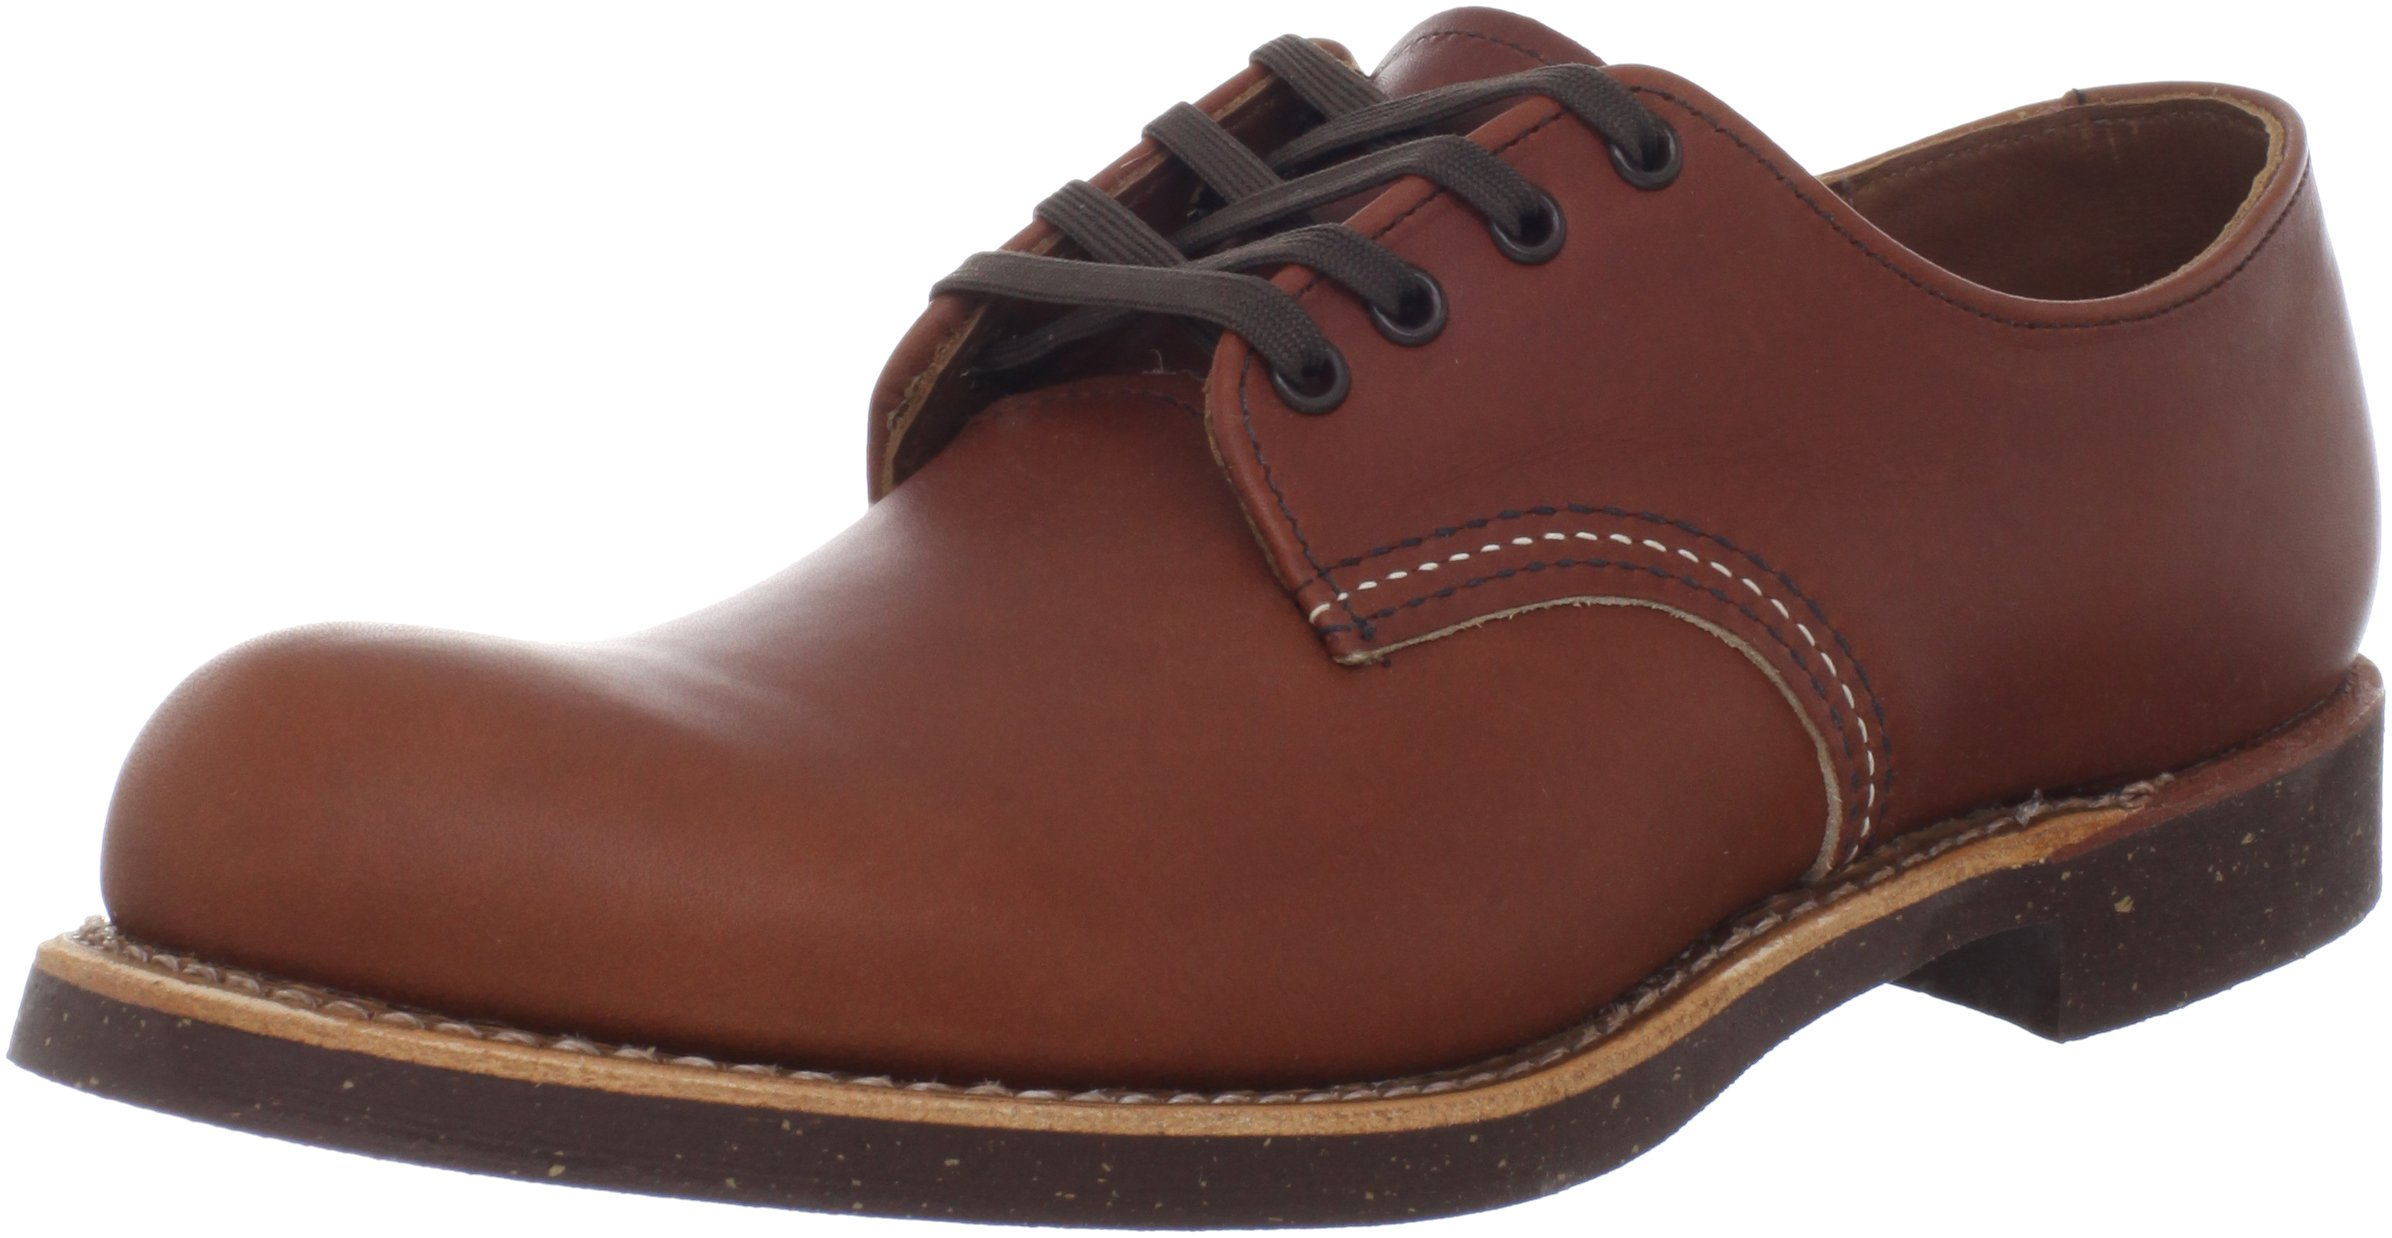 Red Wing Heritage Men's Work Oxford Shoe,Brick,10 D(M) US by Red Wing (Image #1)